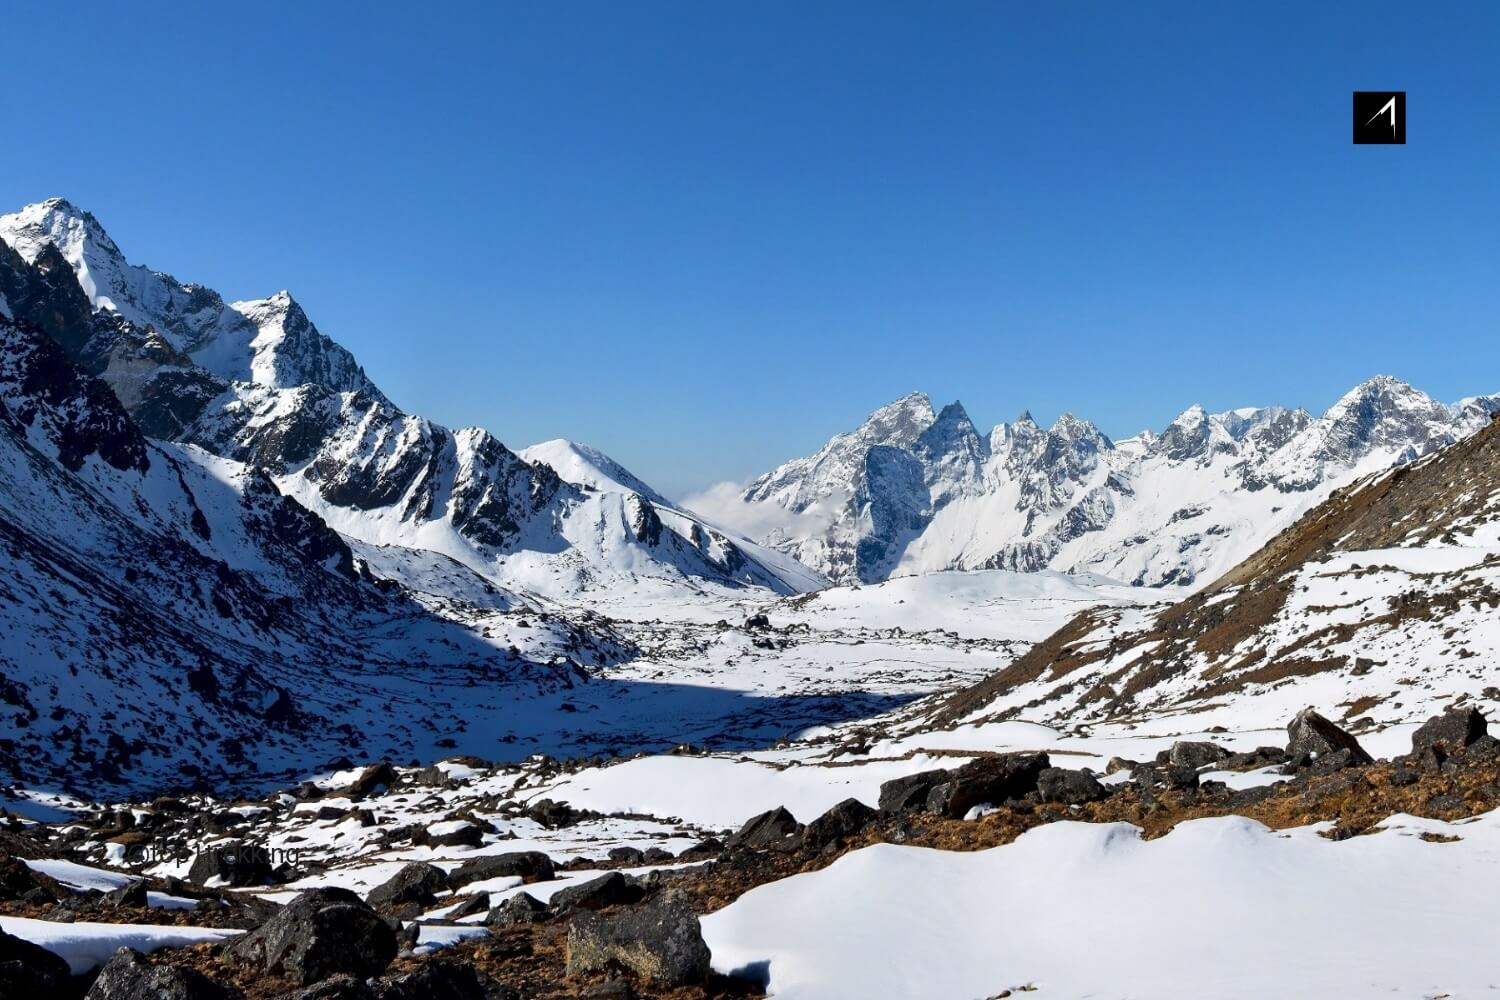 Panoramic view of the mighty Himalayan mountains on the way to Cho-La pass, Nepal.